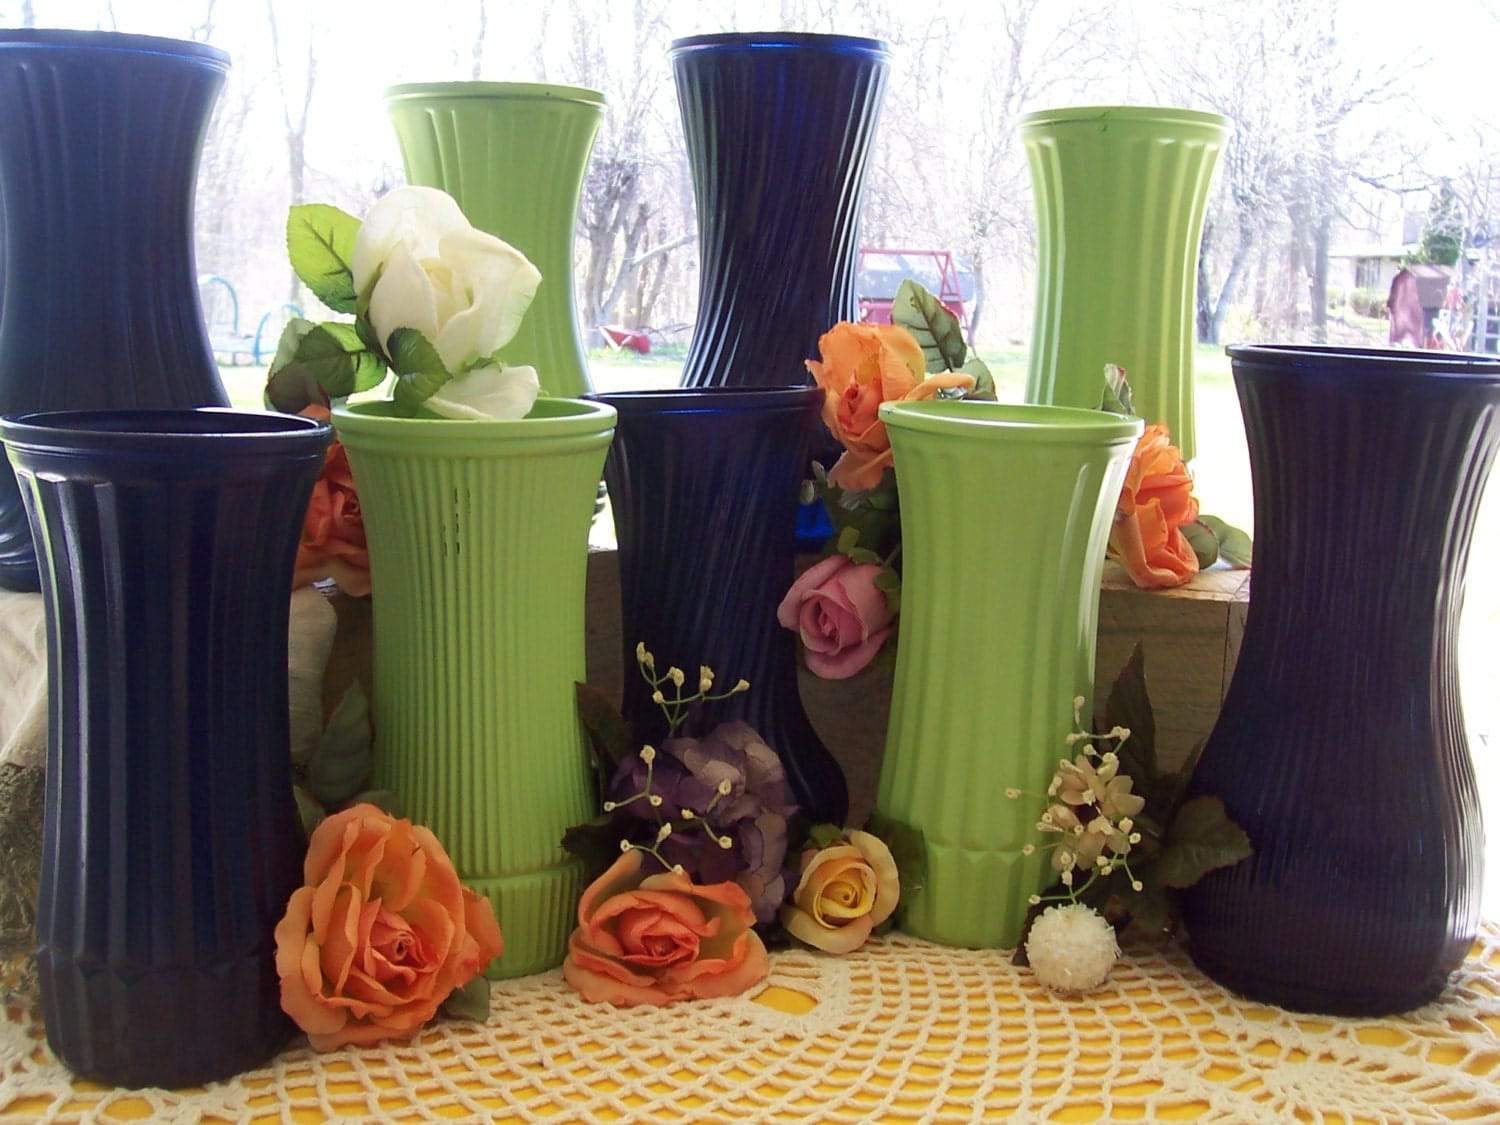 Vases Painted Table Wedding centerpiece flower 9 peacock shabby chic green blue reception decorations glass country rustic vases wedding